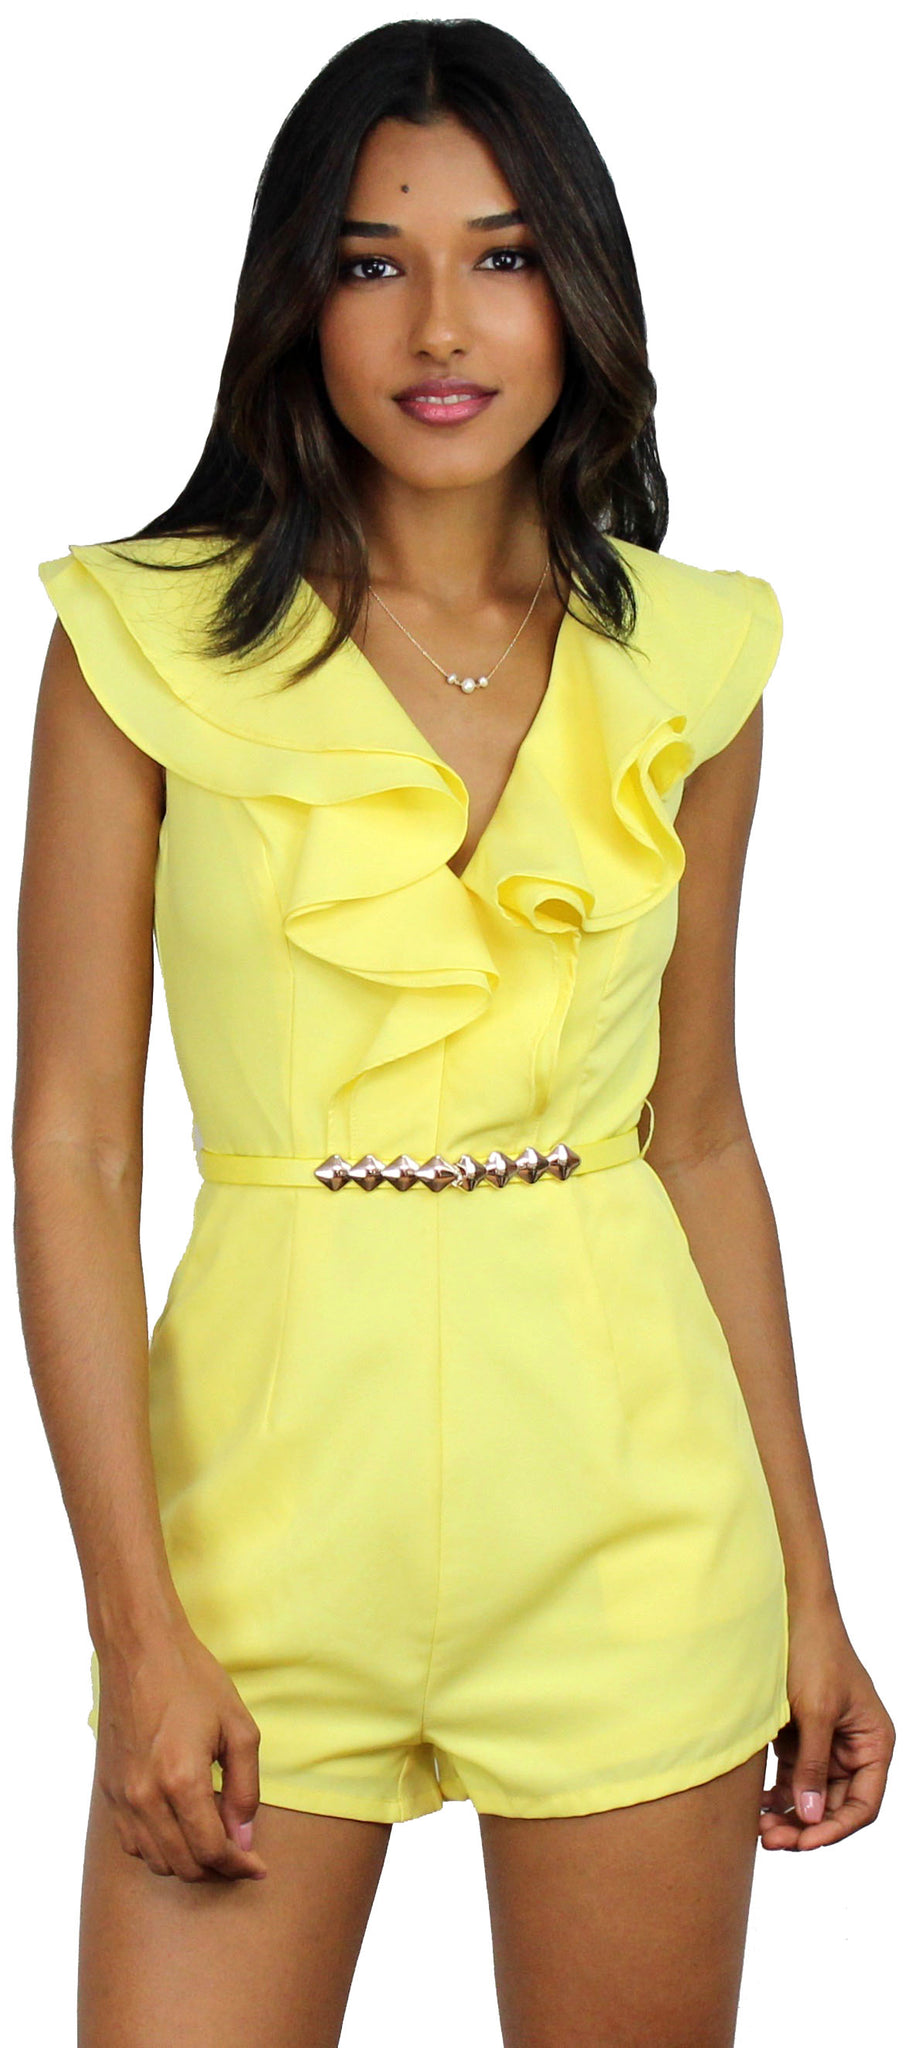 Feeling Gorgeous in Yellow Ruffle Romper